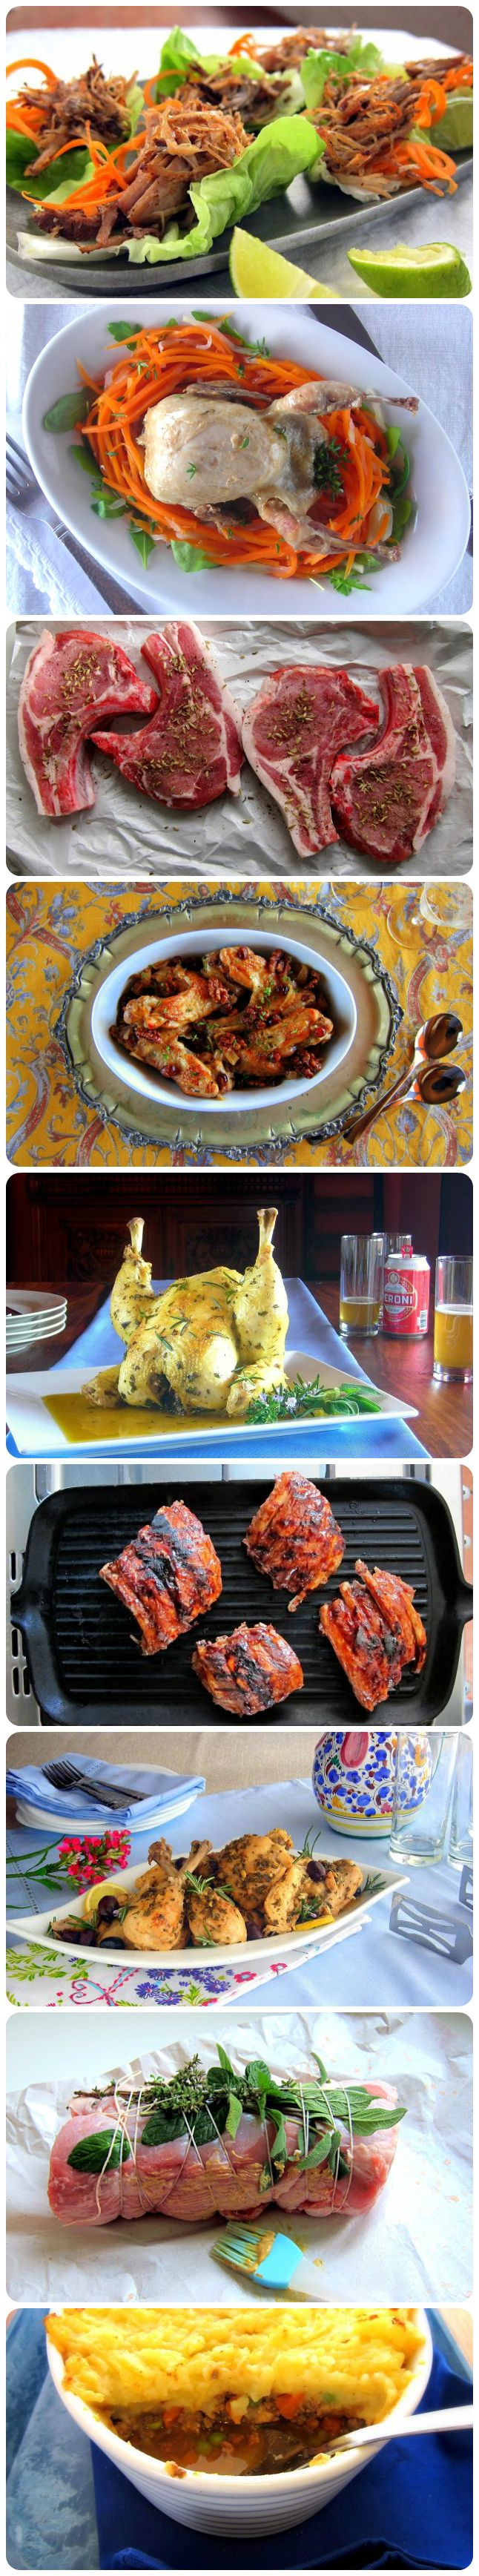 Amazing collection of PRESSURE COOKER meat recipes!